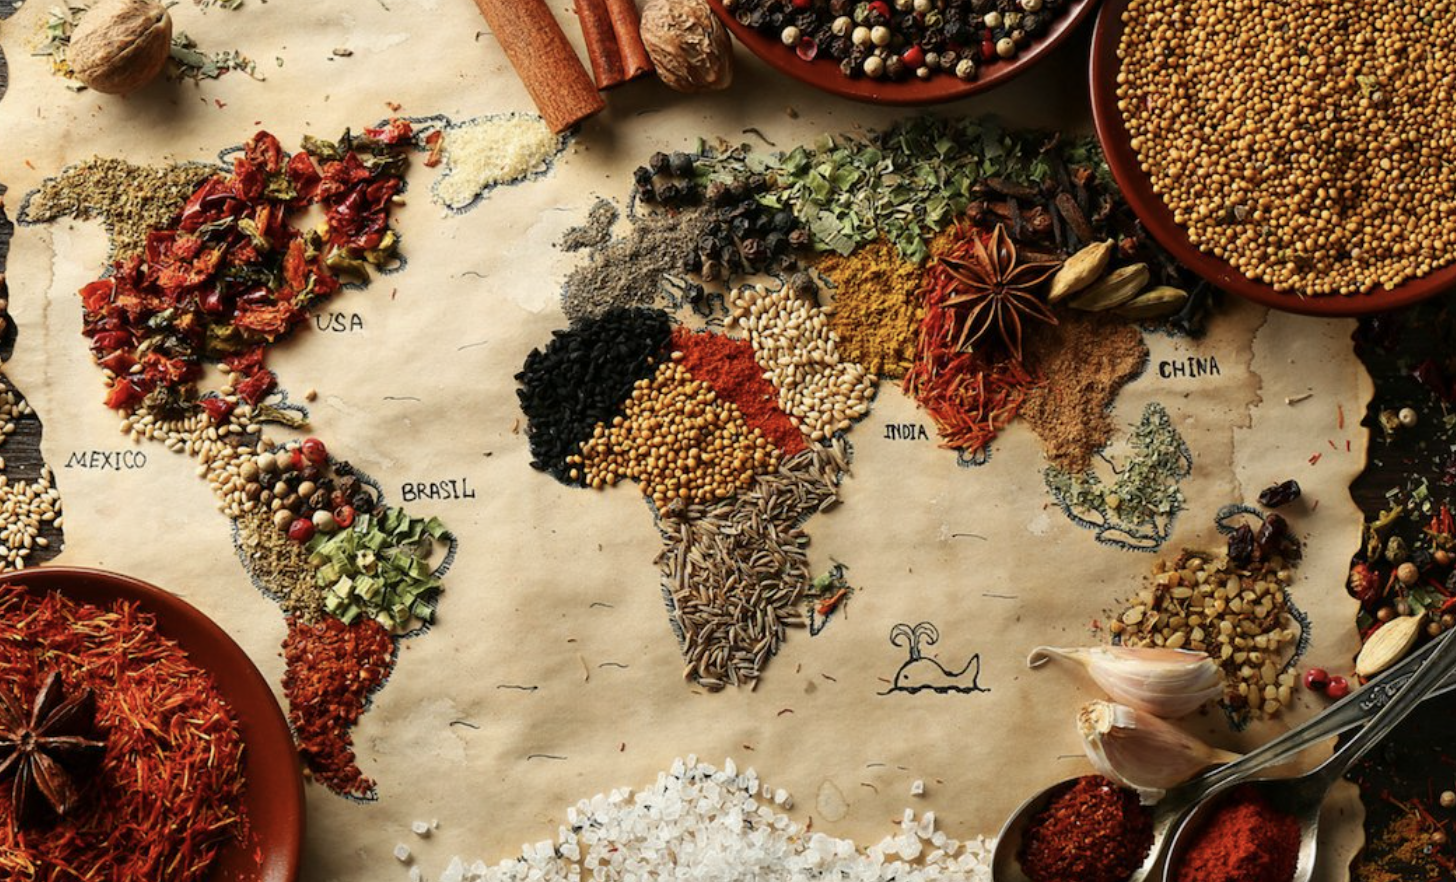 A variety of colorful spices in the shape of a global map across brown paper, with bowls of spices surrounding